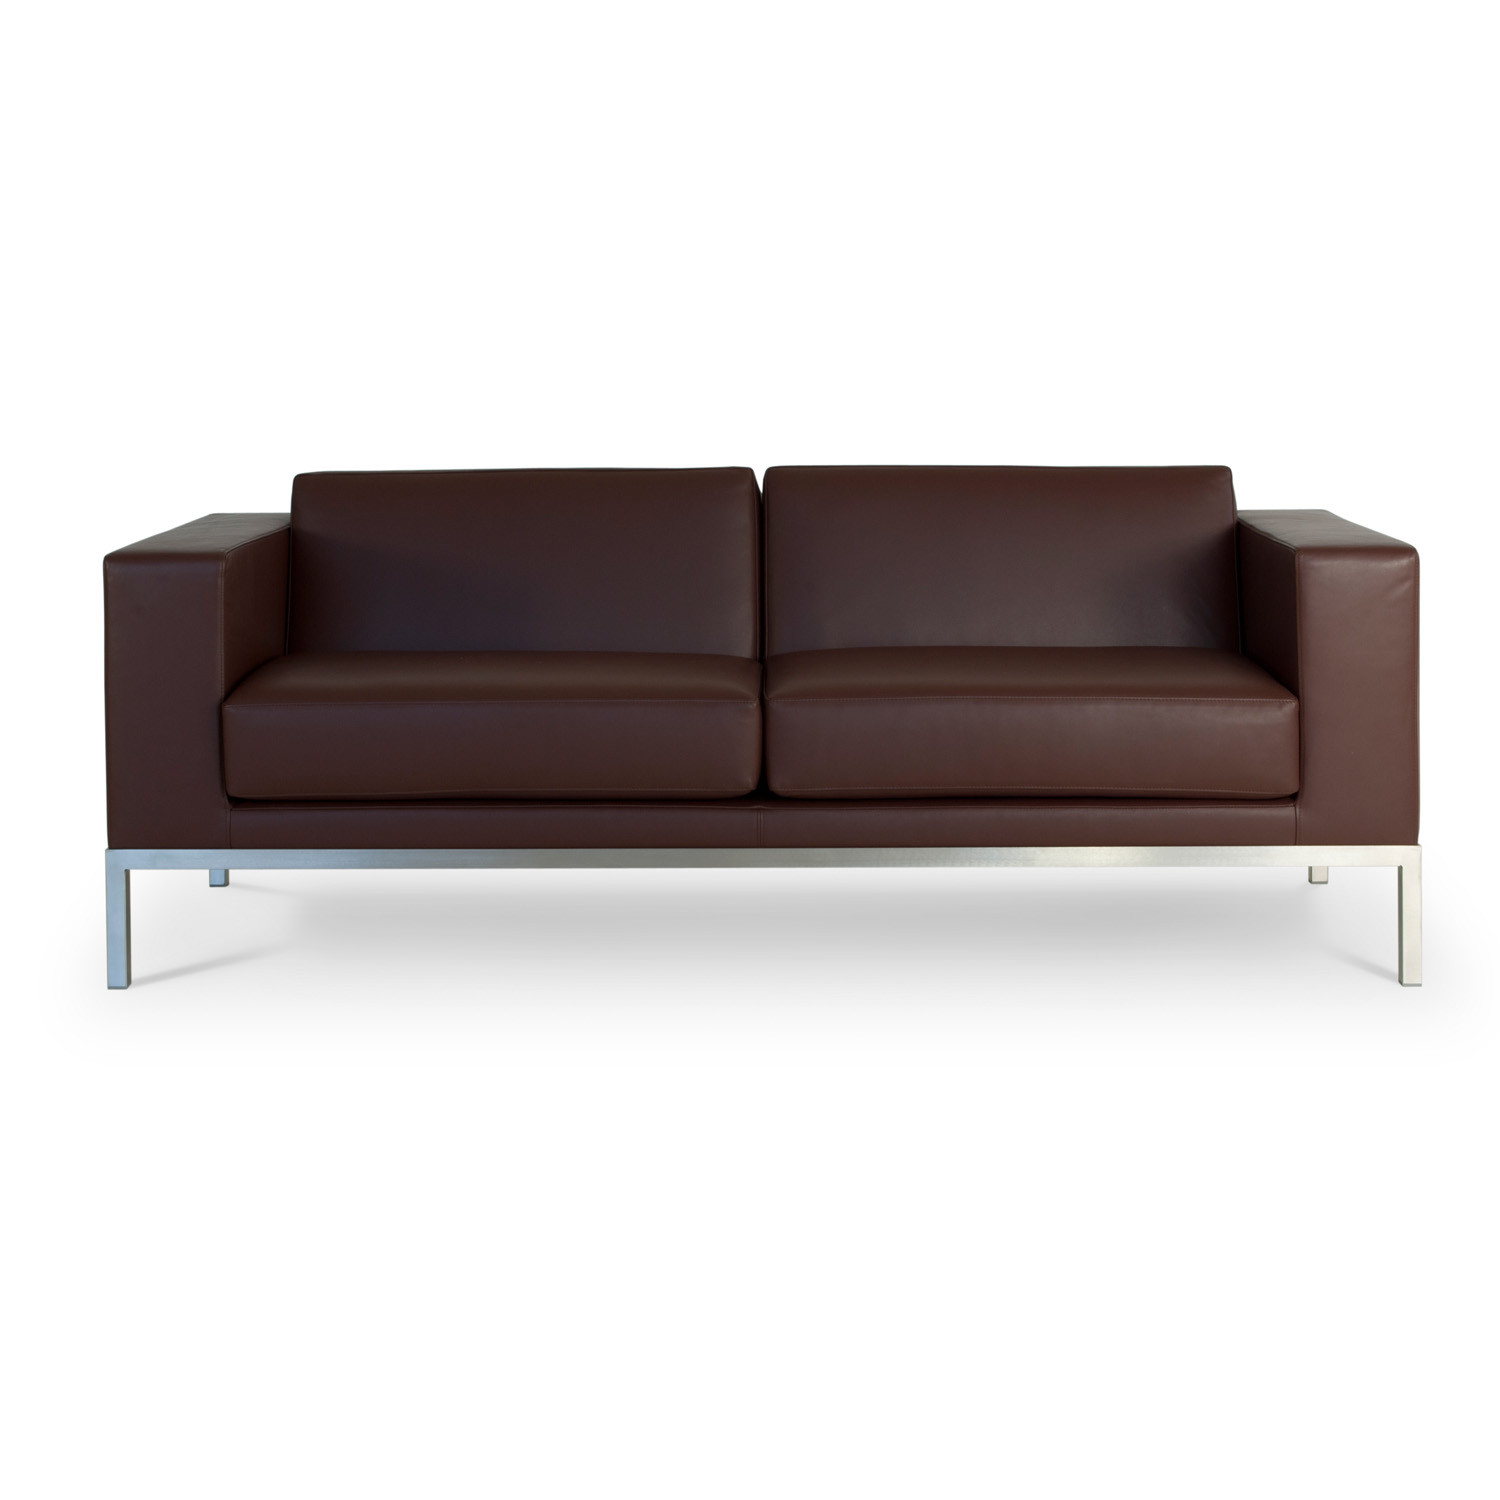 HM25 Reception Sofa